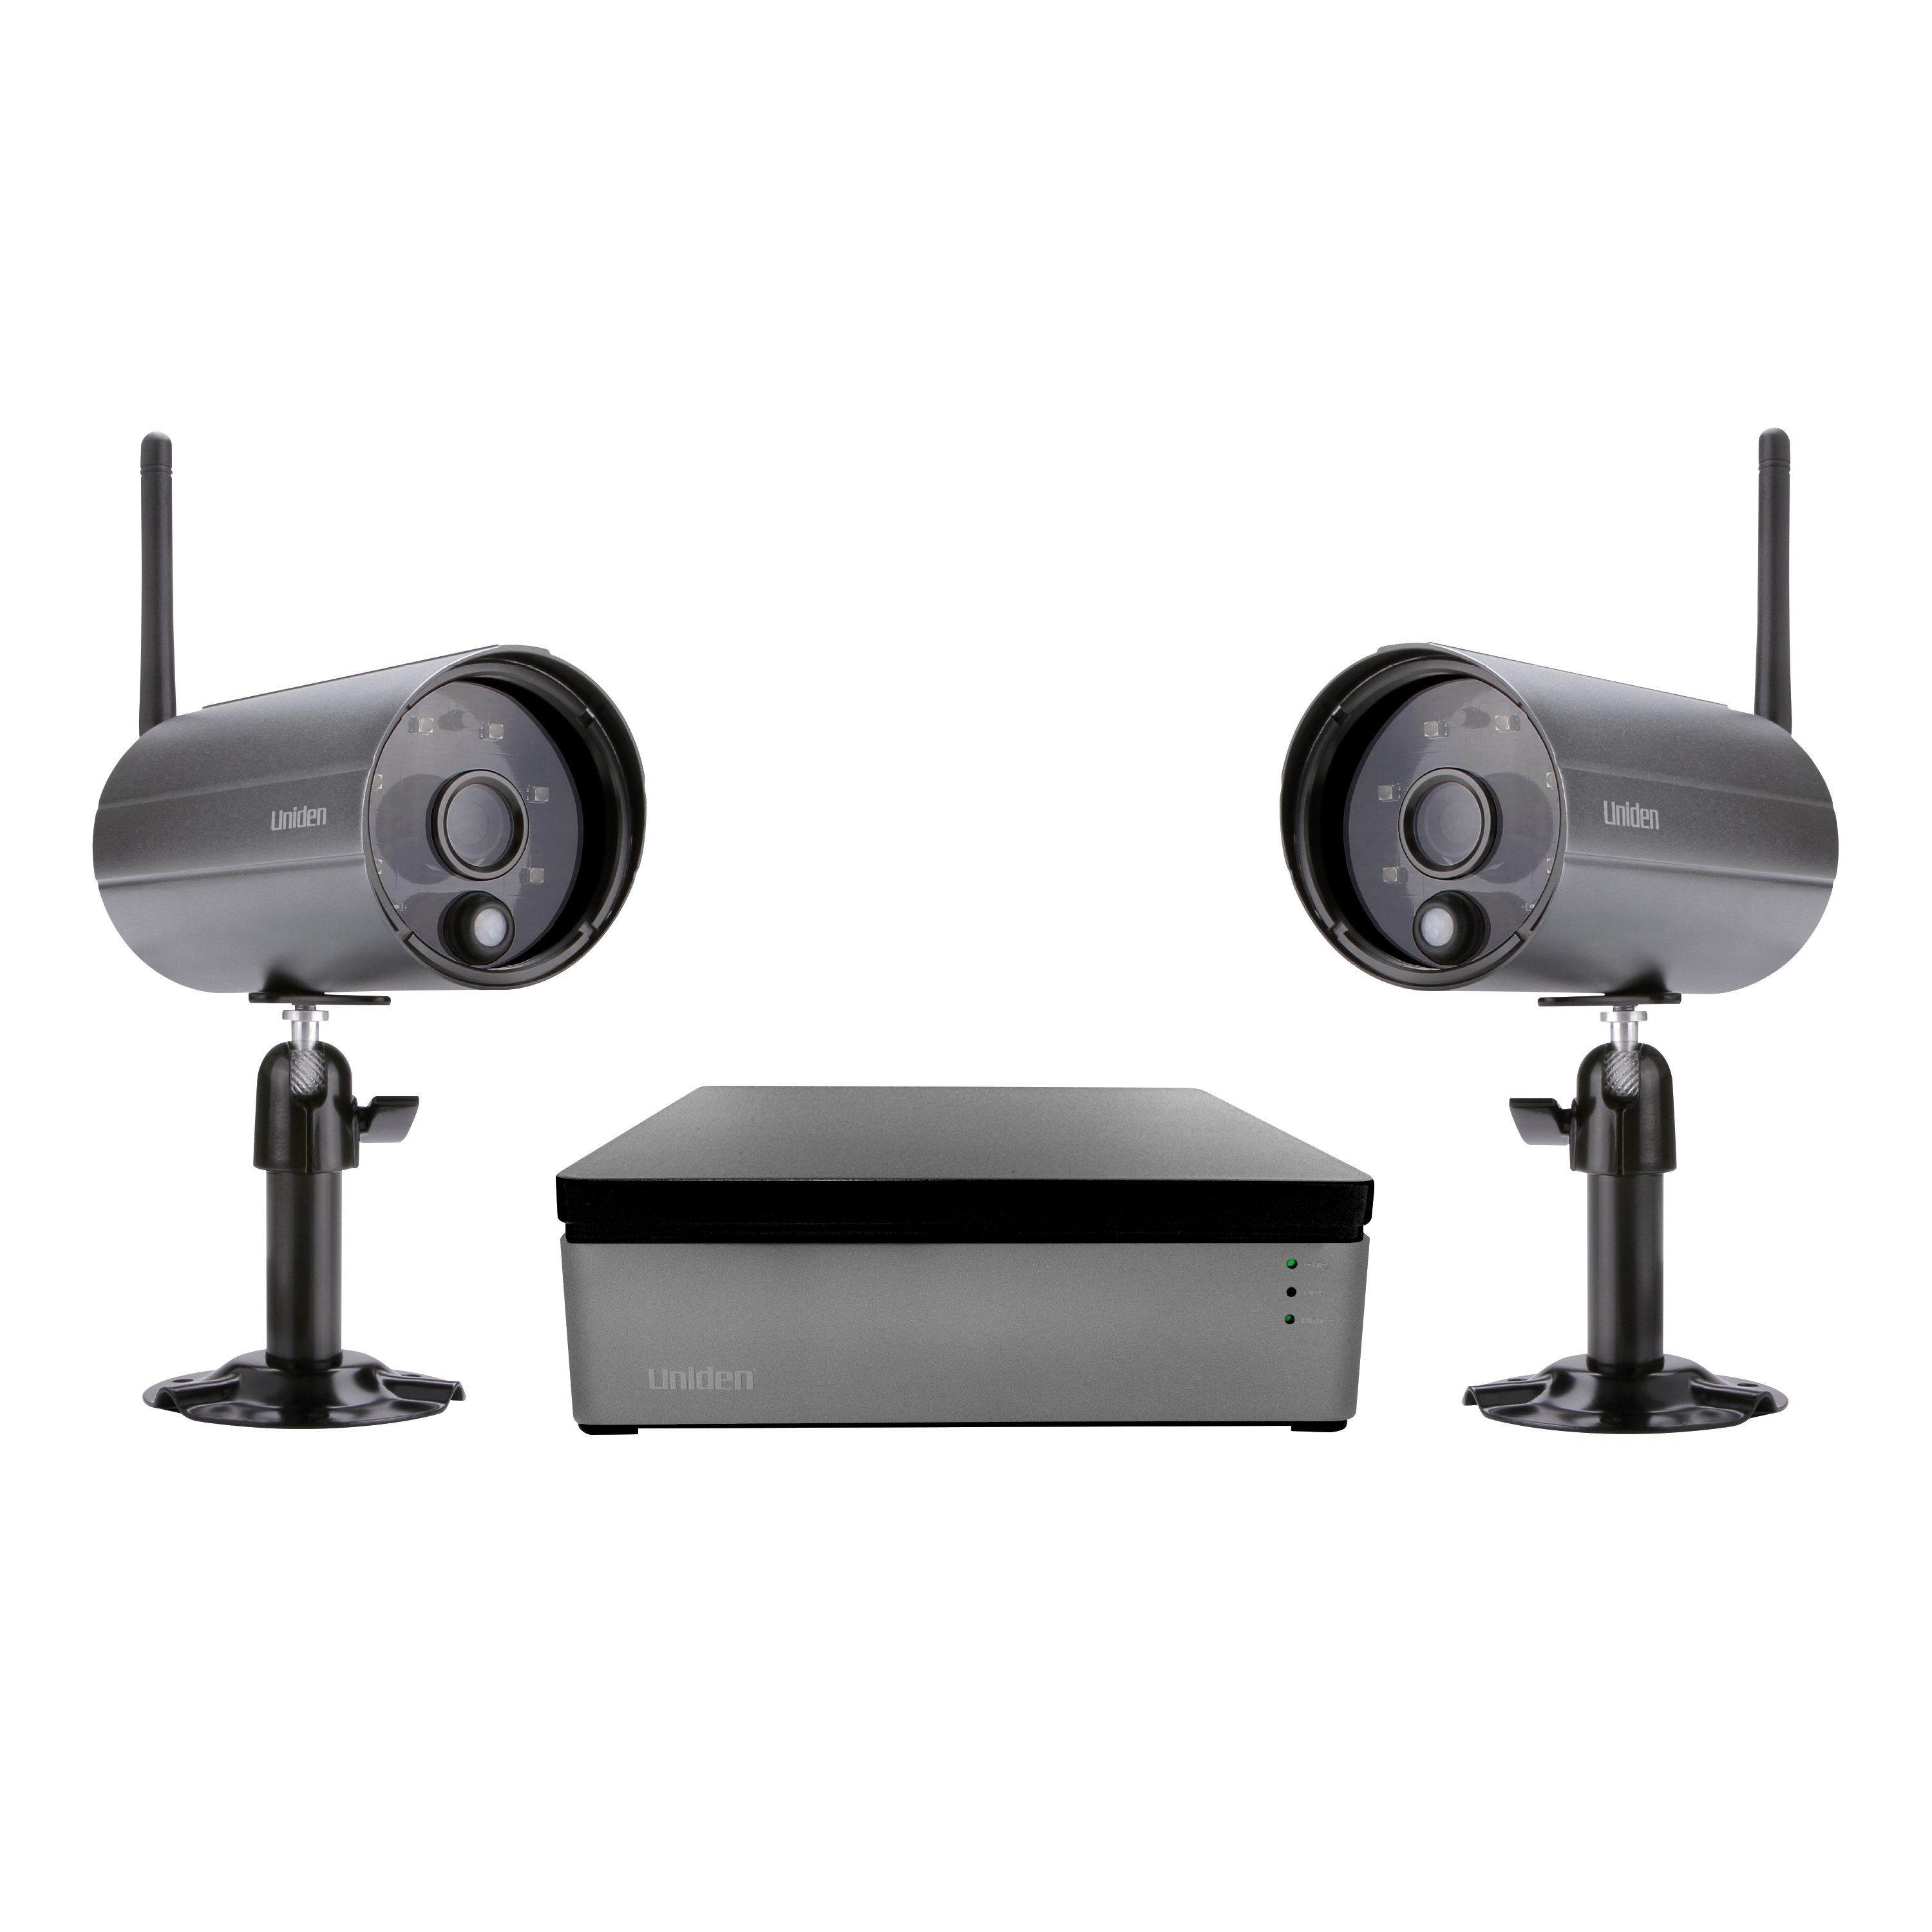 Uniden Launches First Fully Integrated Wireless DVR Video ...